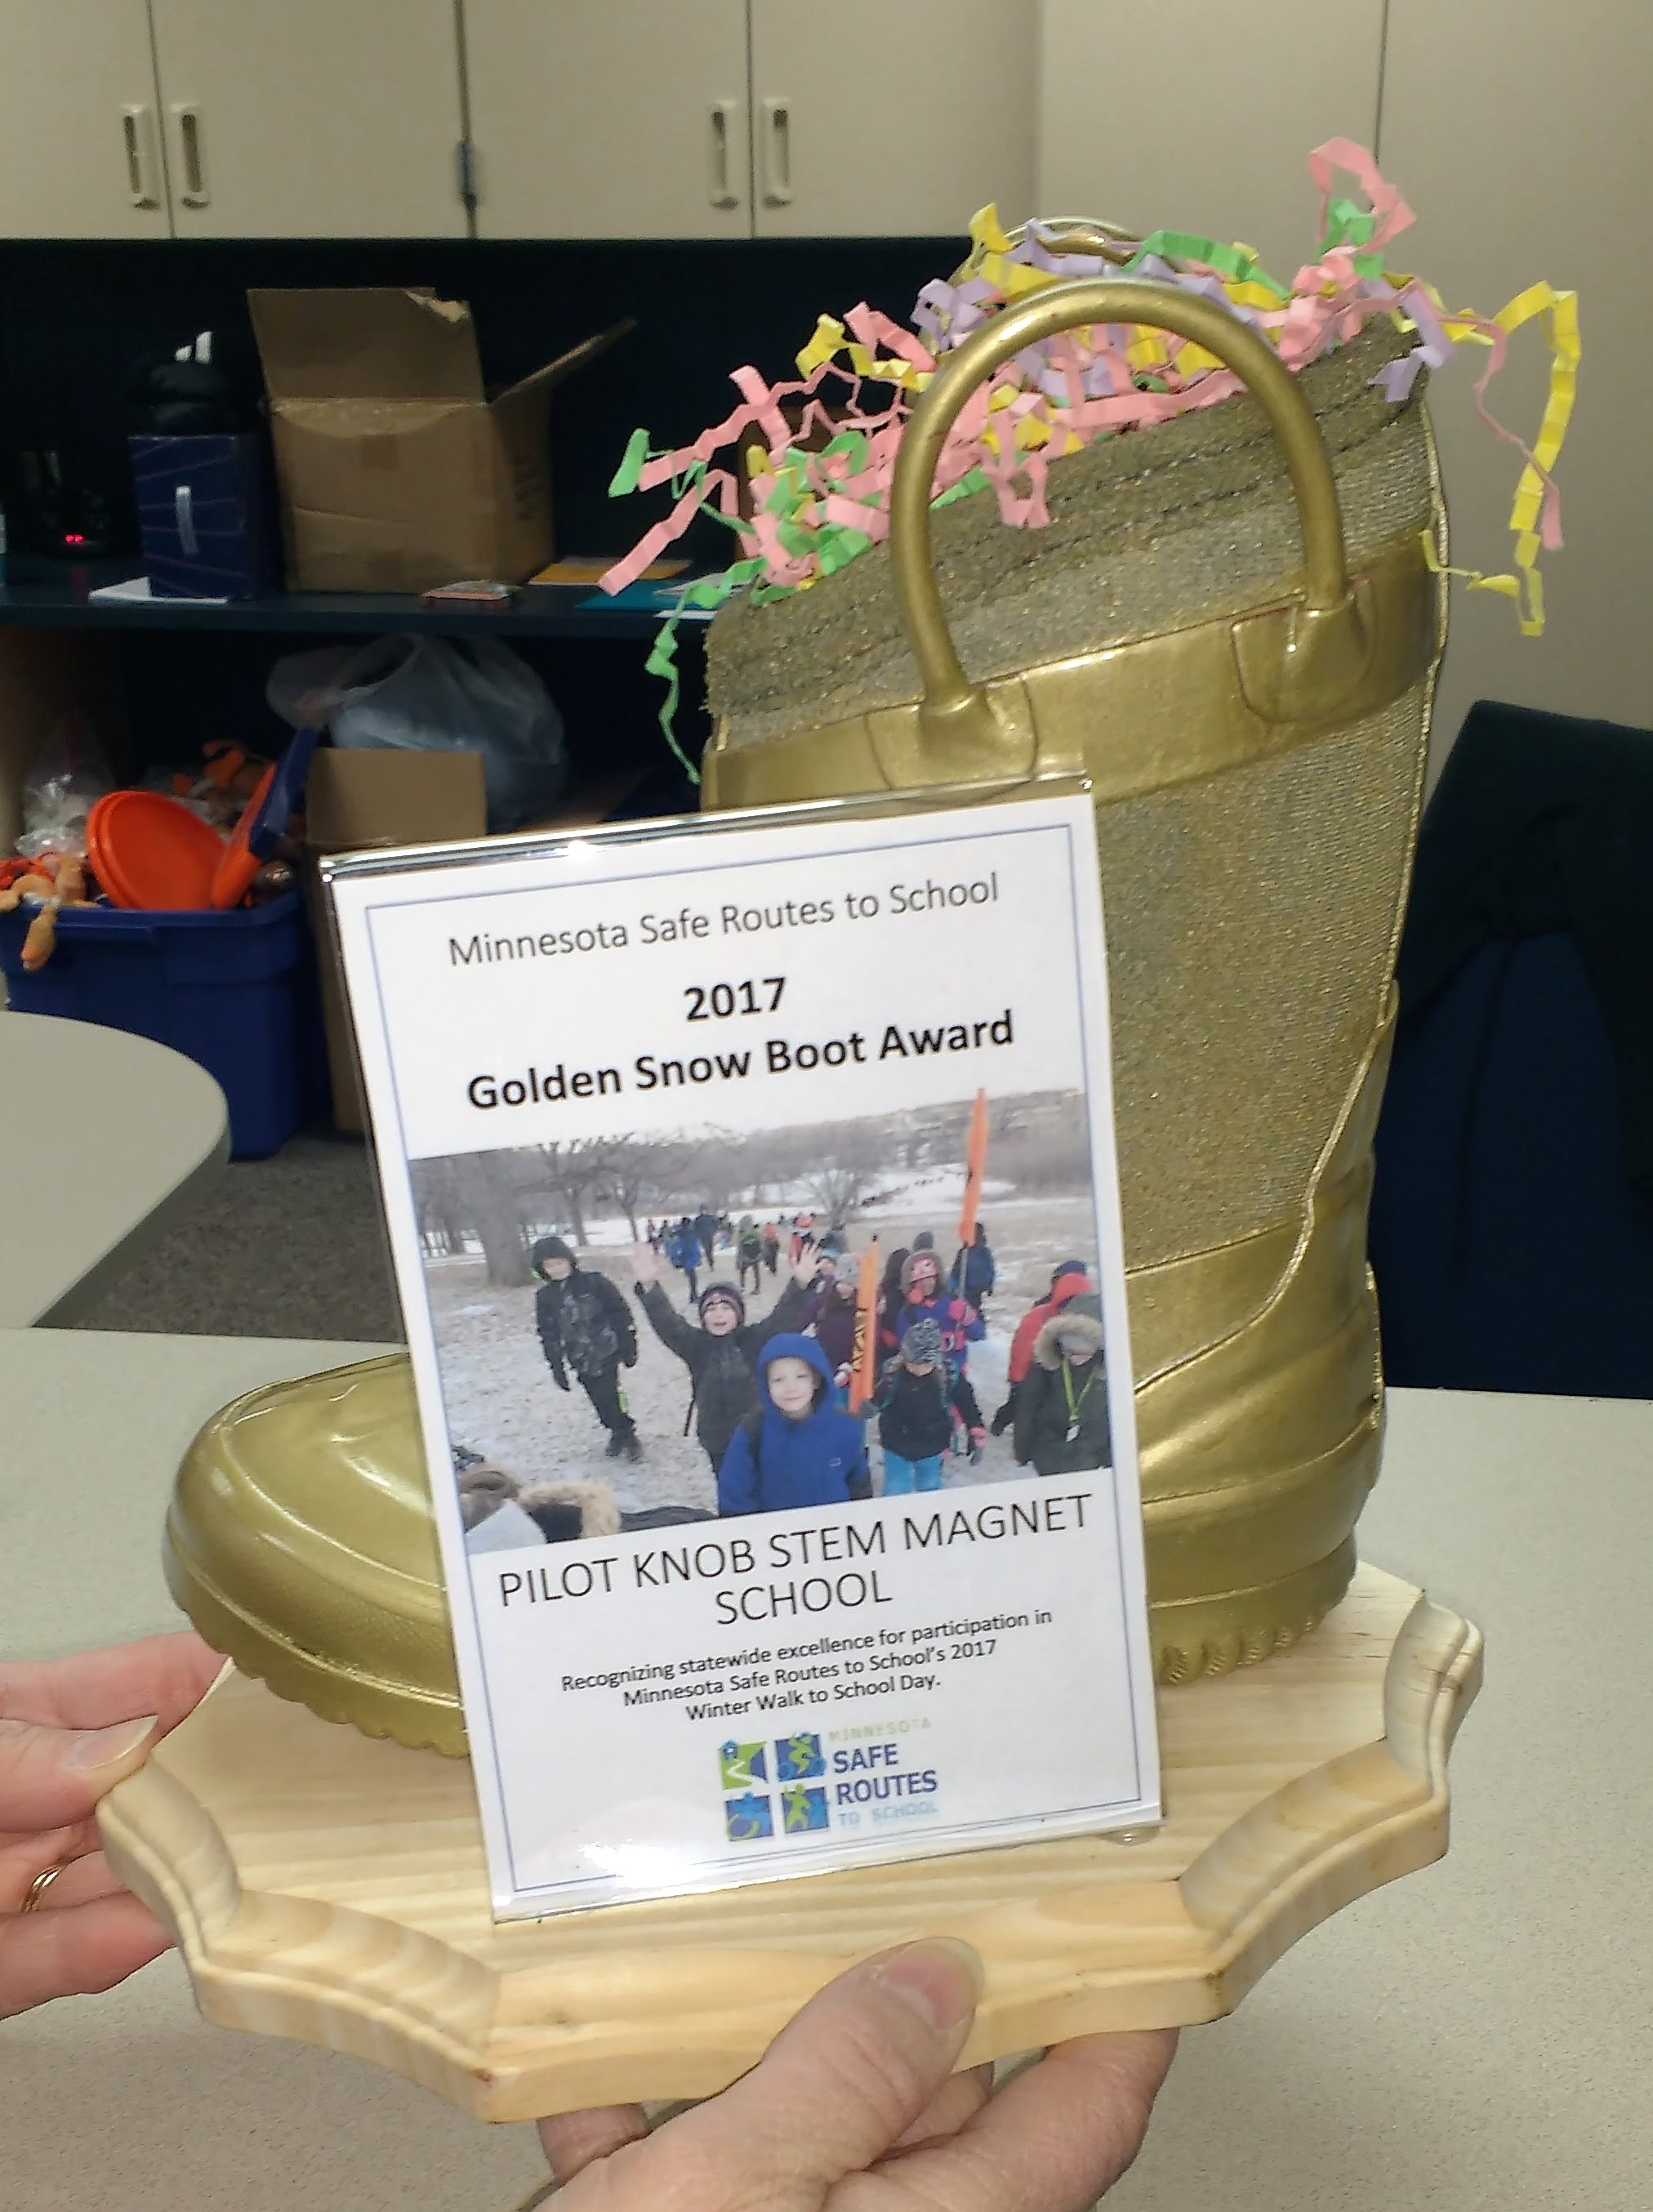 photo of golden snow boot award for 2017